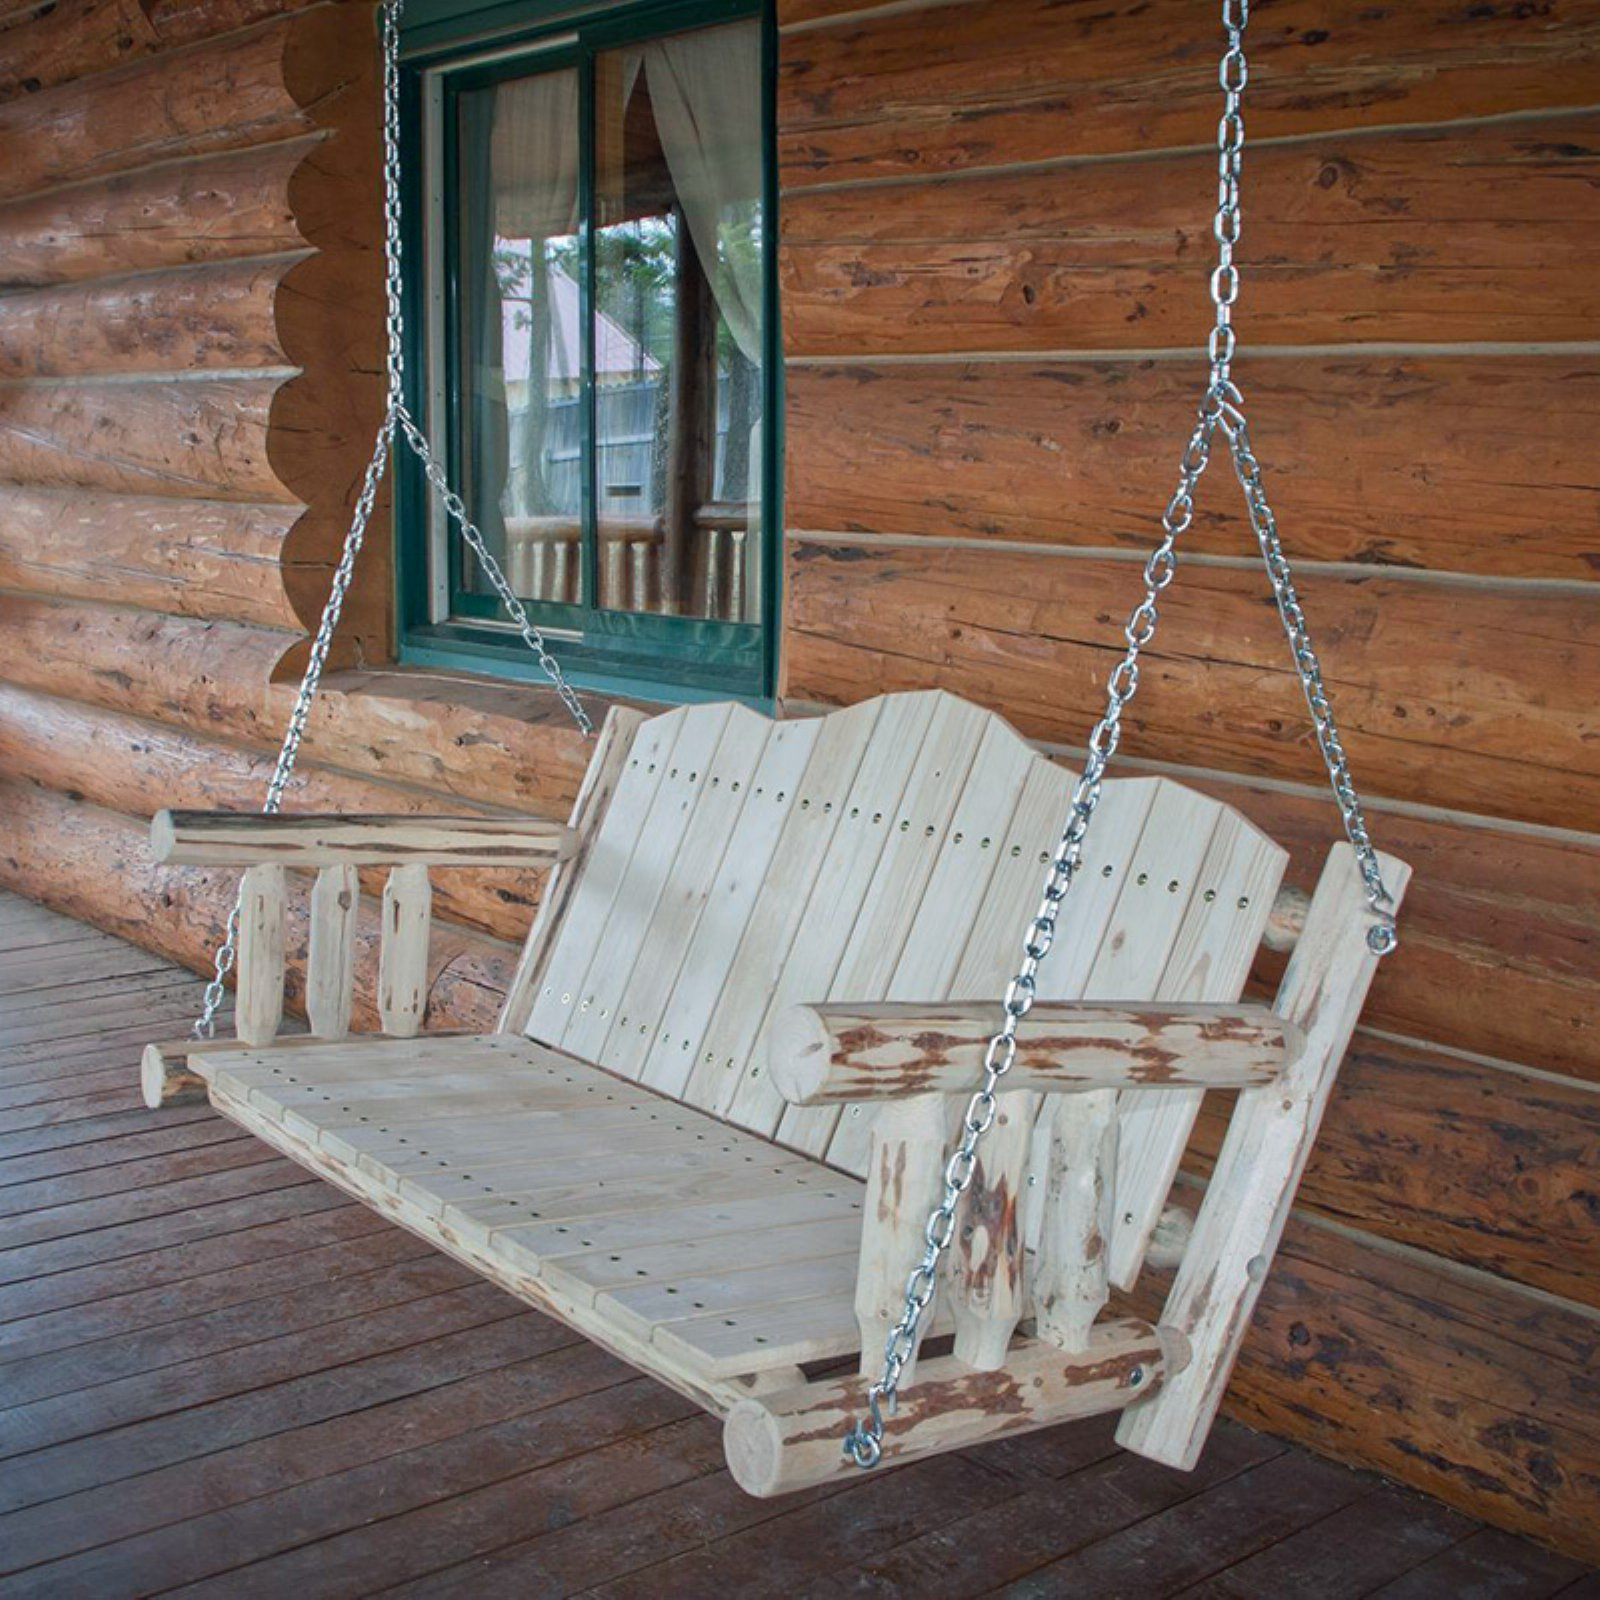 Montana Woodworks 4 ft. Porch Swing with Chains by Montana Woodworks